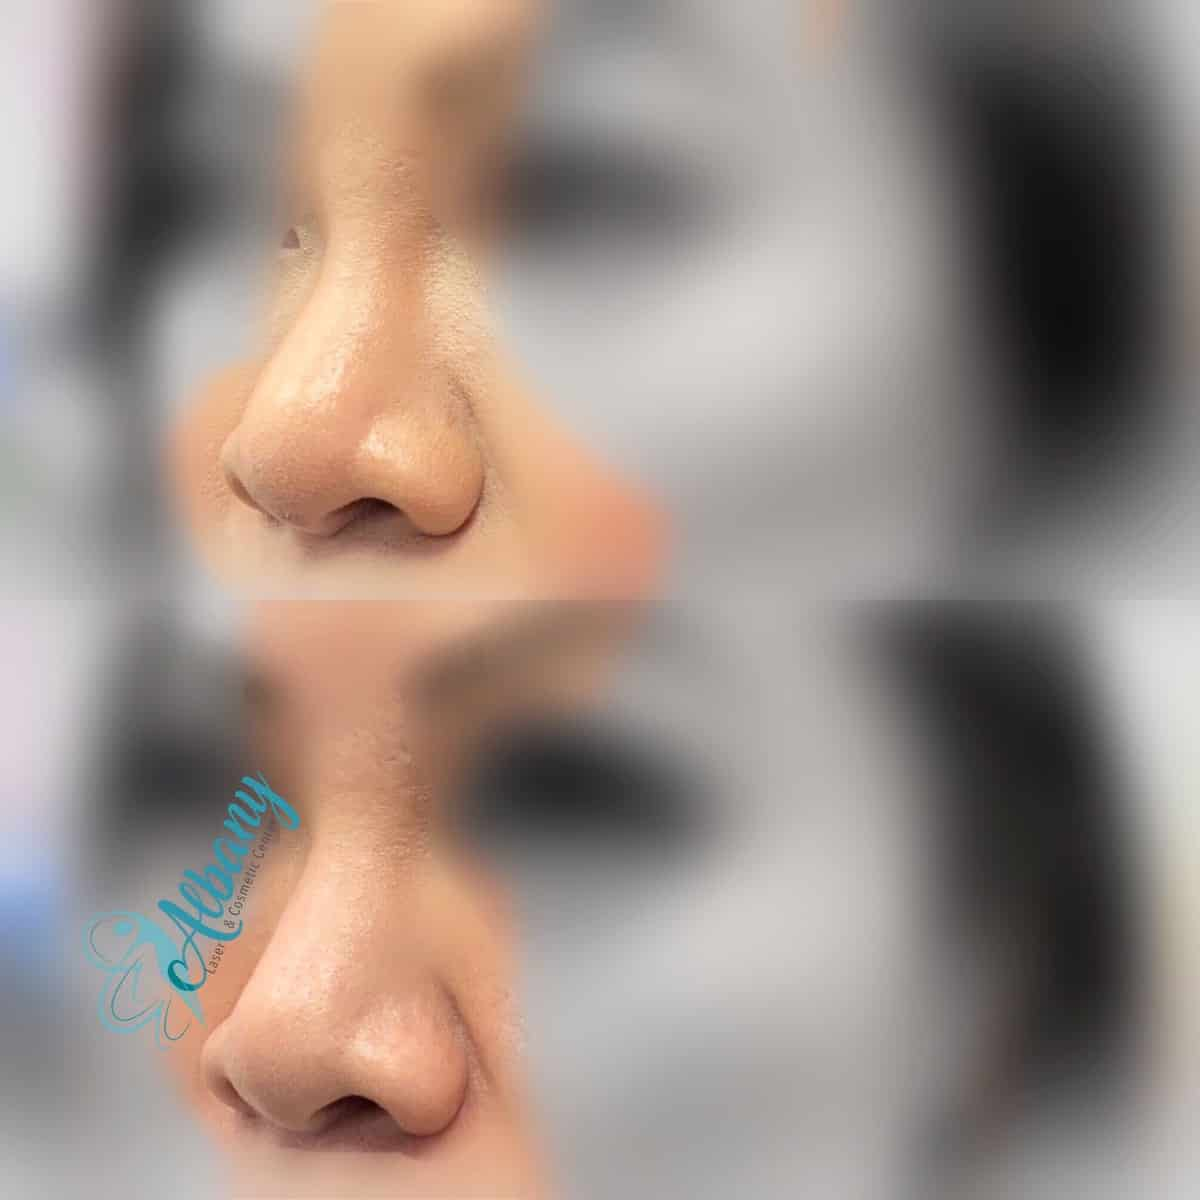 rhinoplasty with fillers by Dr. Kamal Alhallak (Ph.D.)